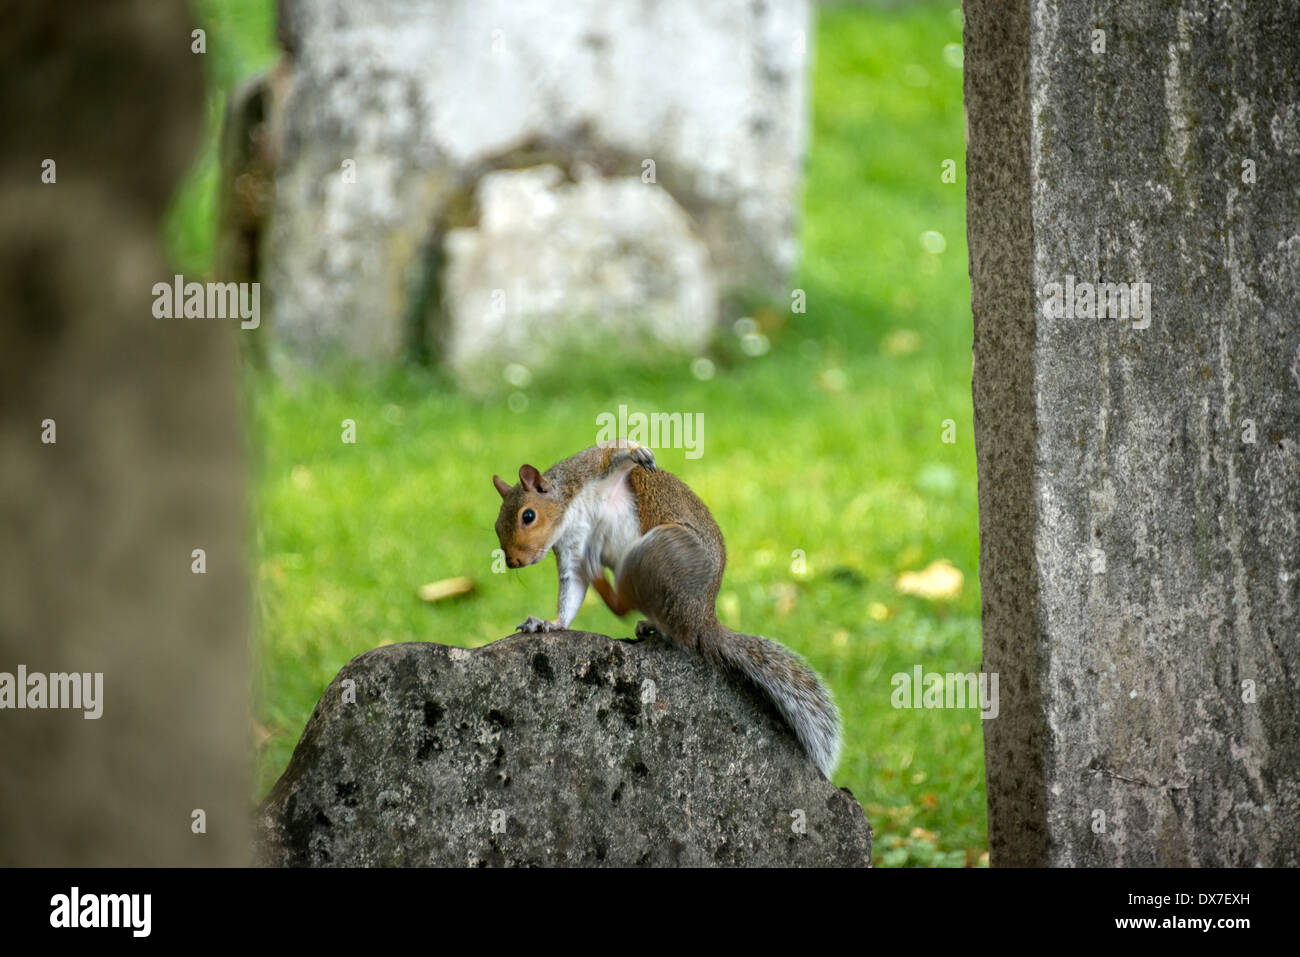 Bunhill Fields, an old burial ground in the London Borough of Islington, north of the City of London, & is a haven for wildlife - Stock Image